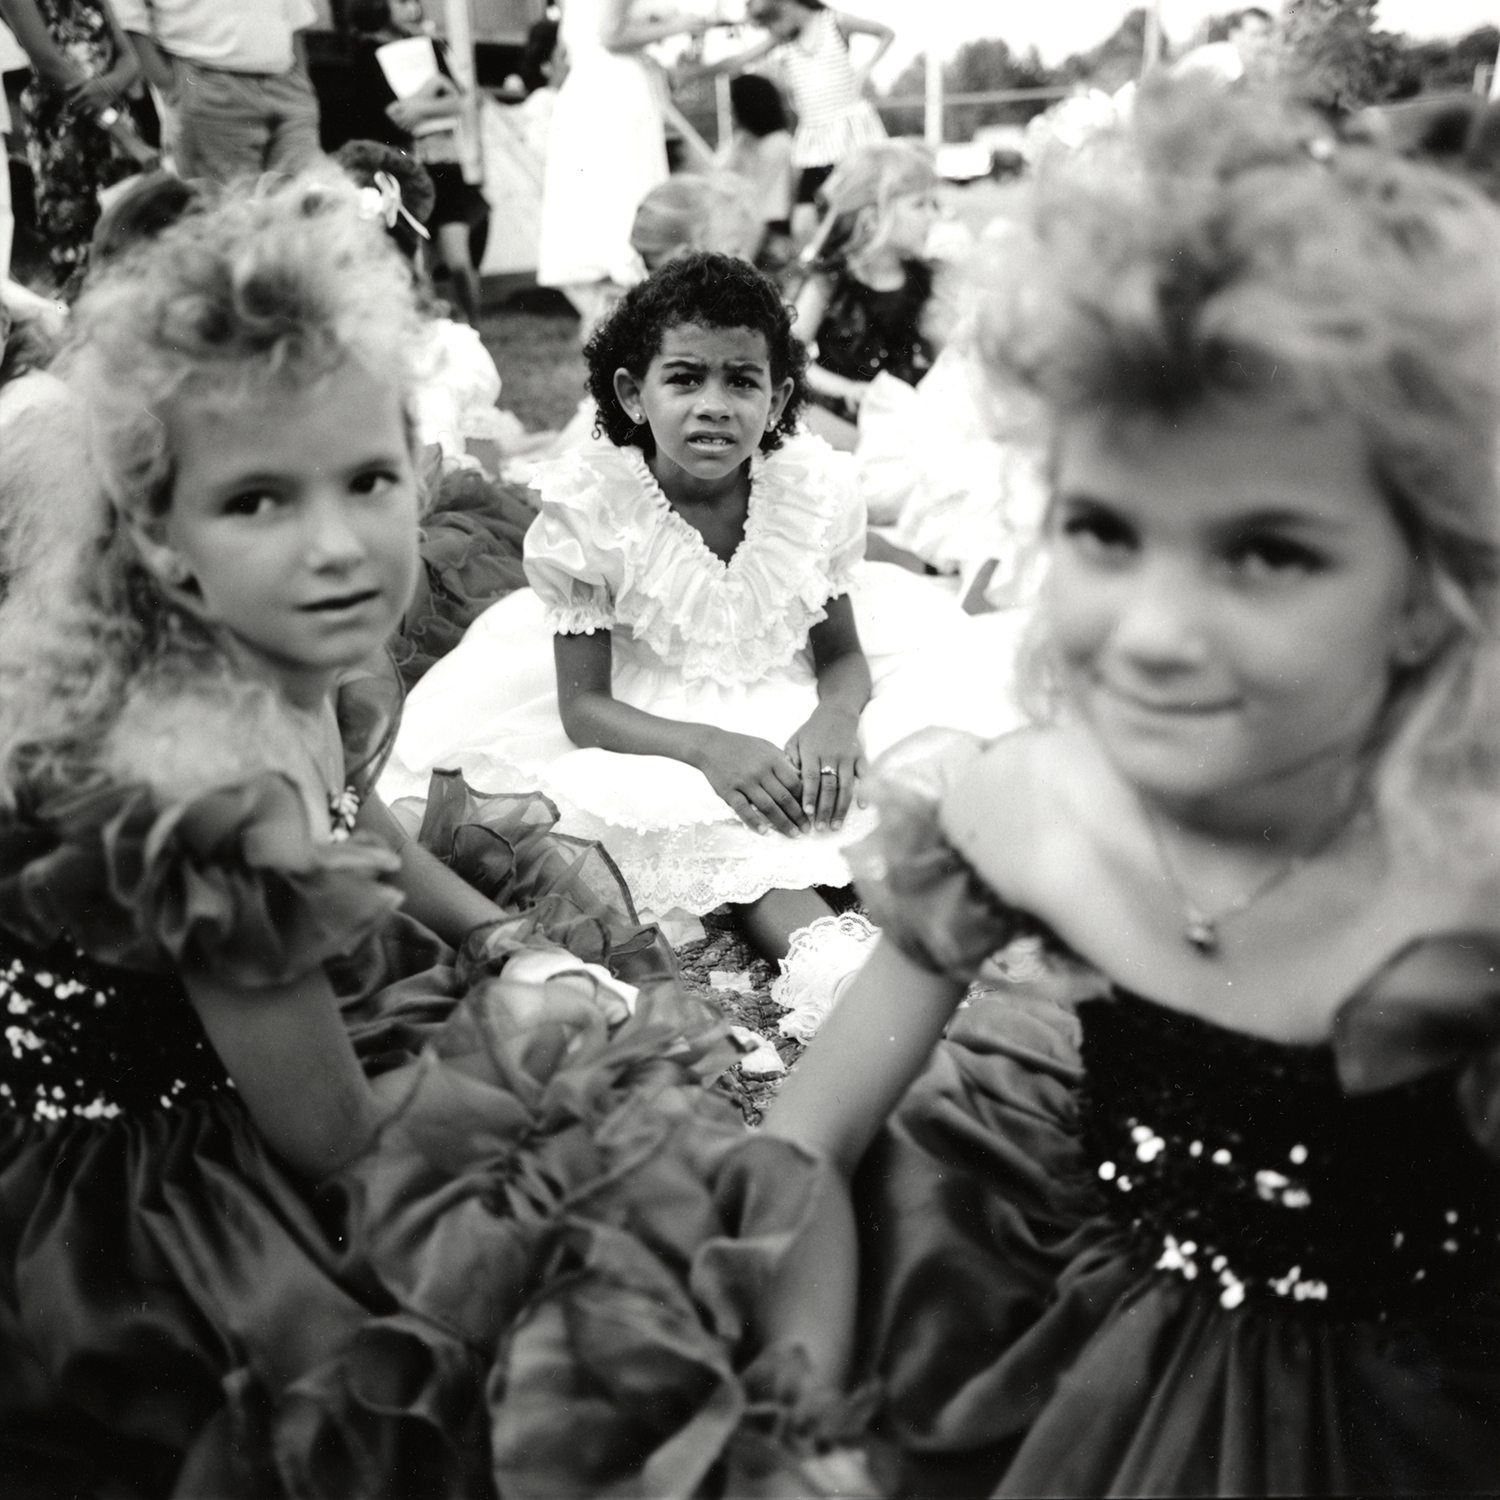 Girls at Beauty Pageant, Clarksville, Arkansas, archival pigment print,16x20, 1990